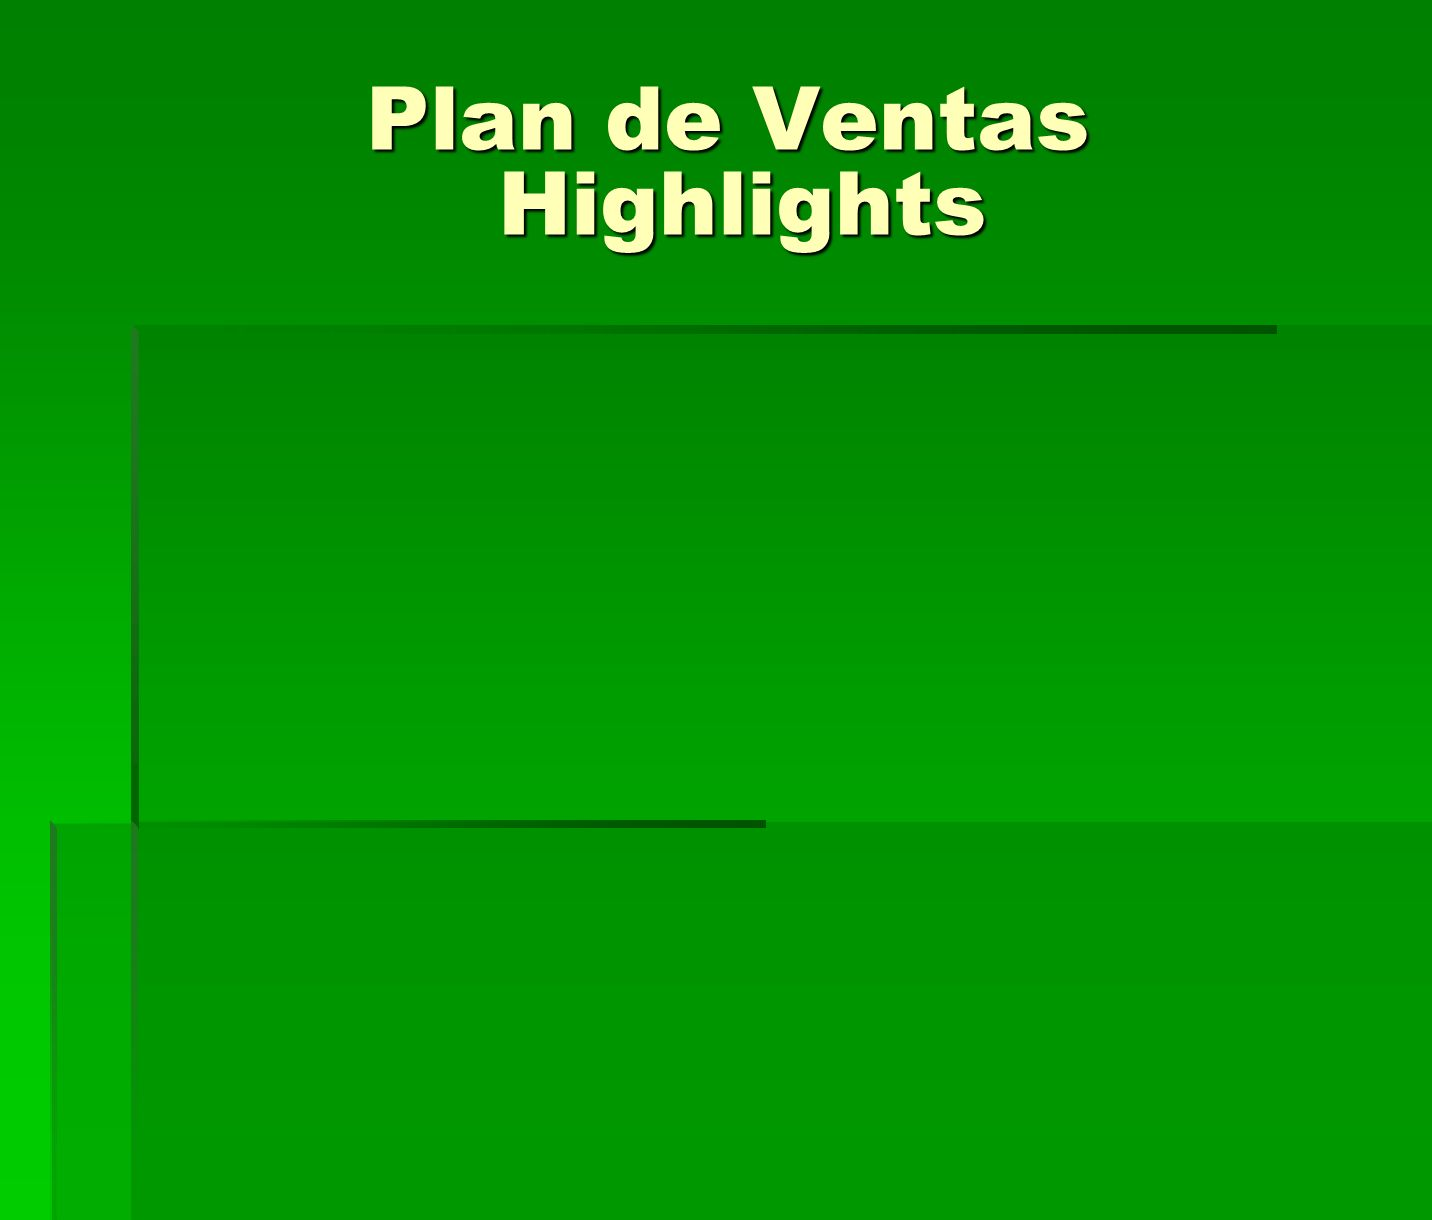 Plan de Ventas Highlights